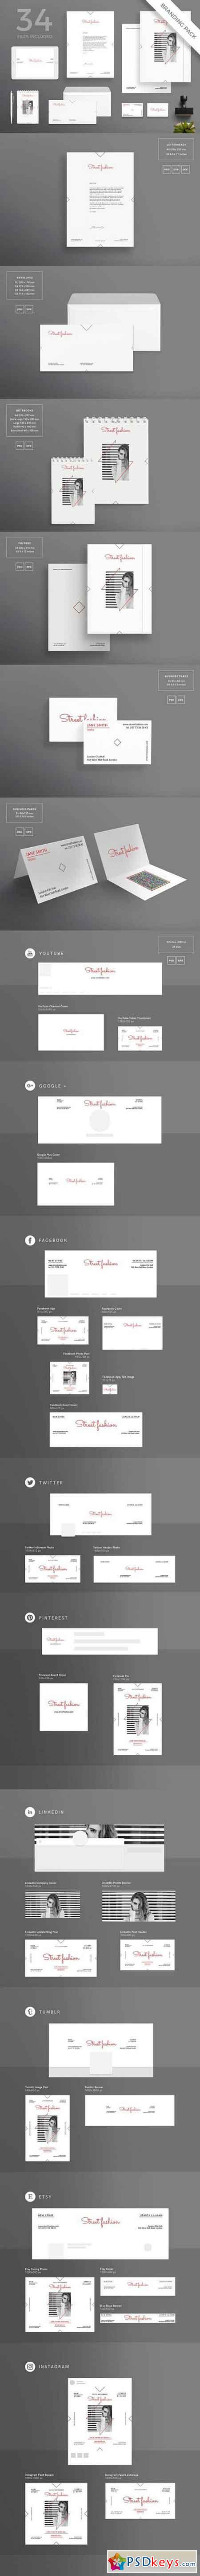 Branding Pack Street Fashion 1495624